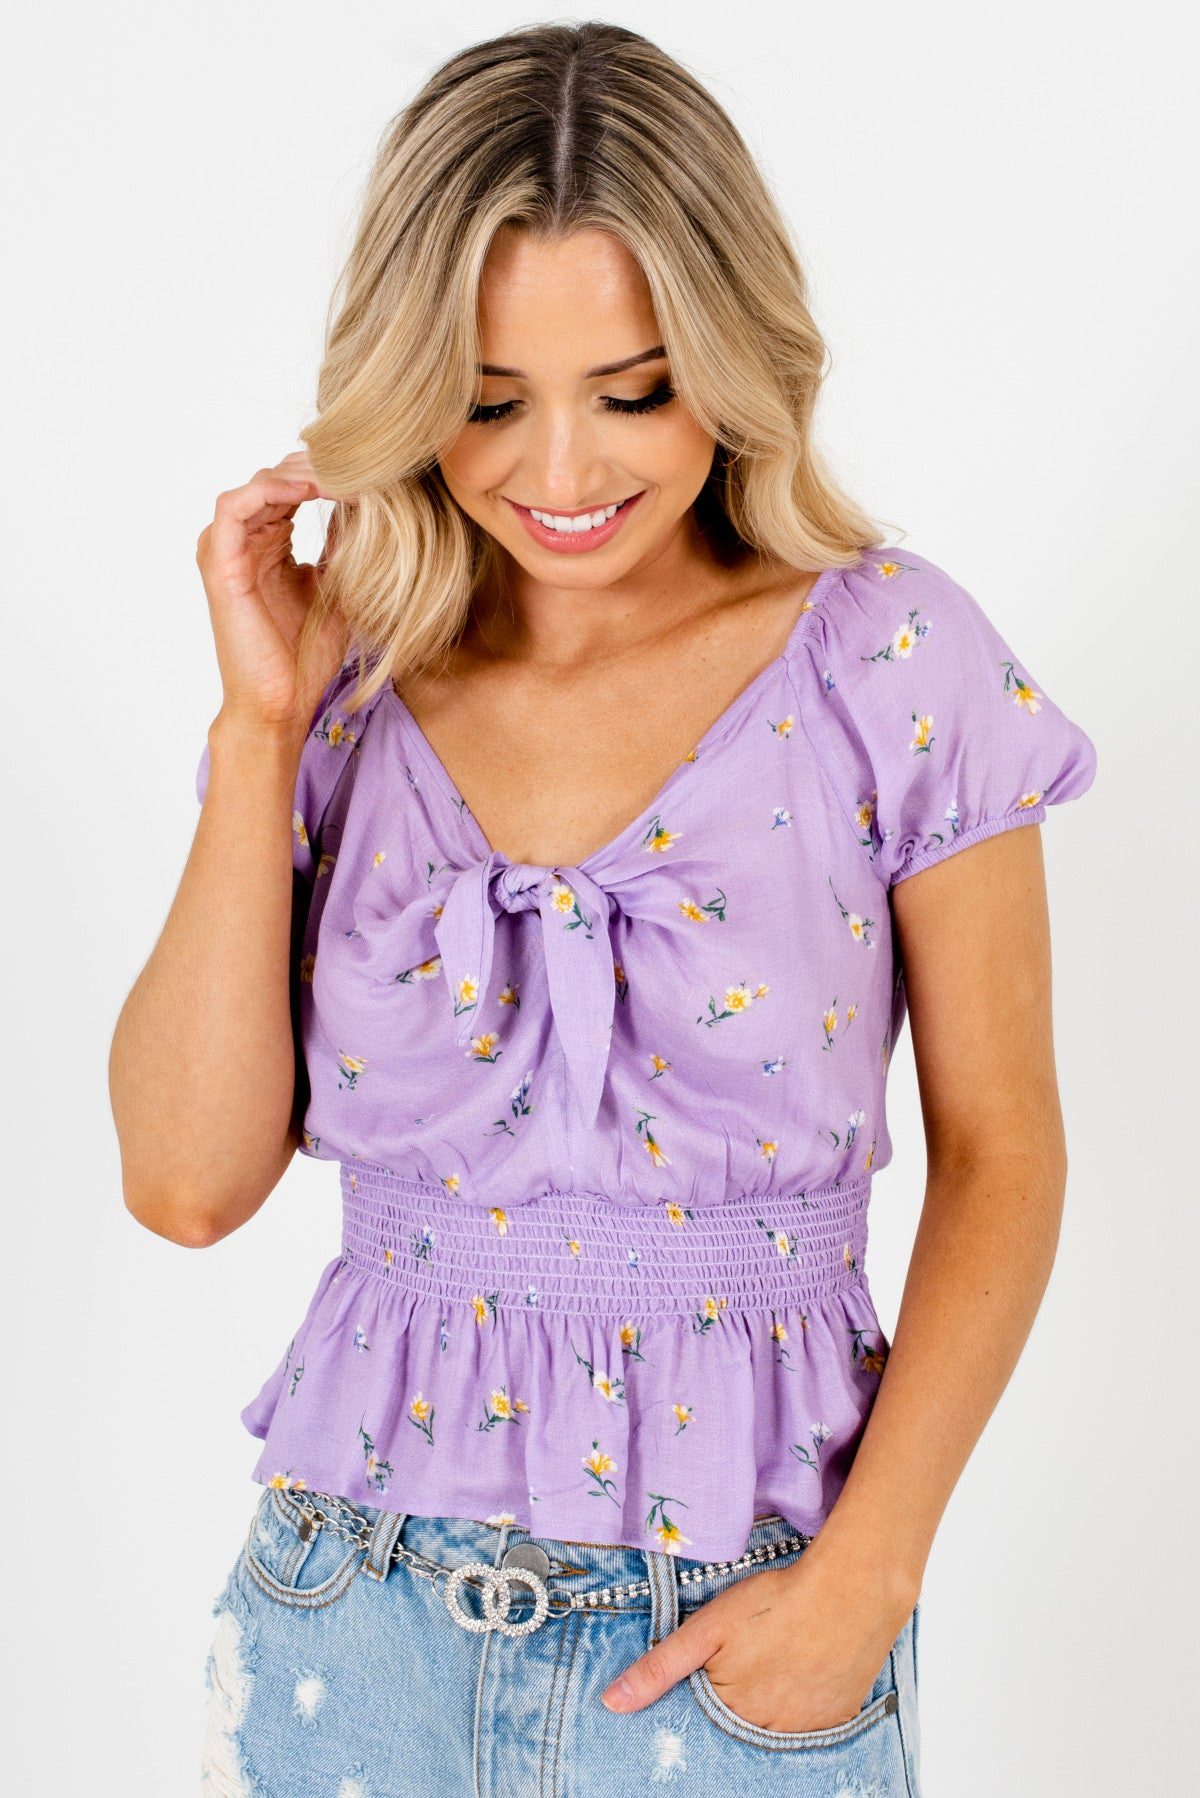 Lilac Purple Floral Peplum Tops with Puff Sleeves and Tie Detail